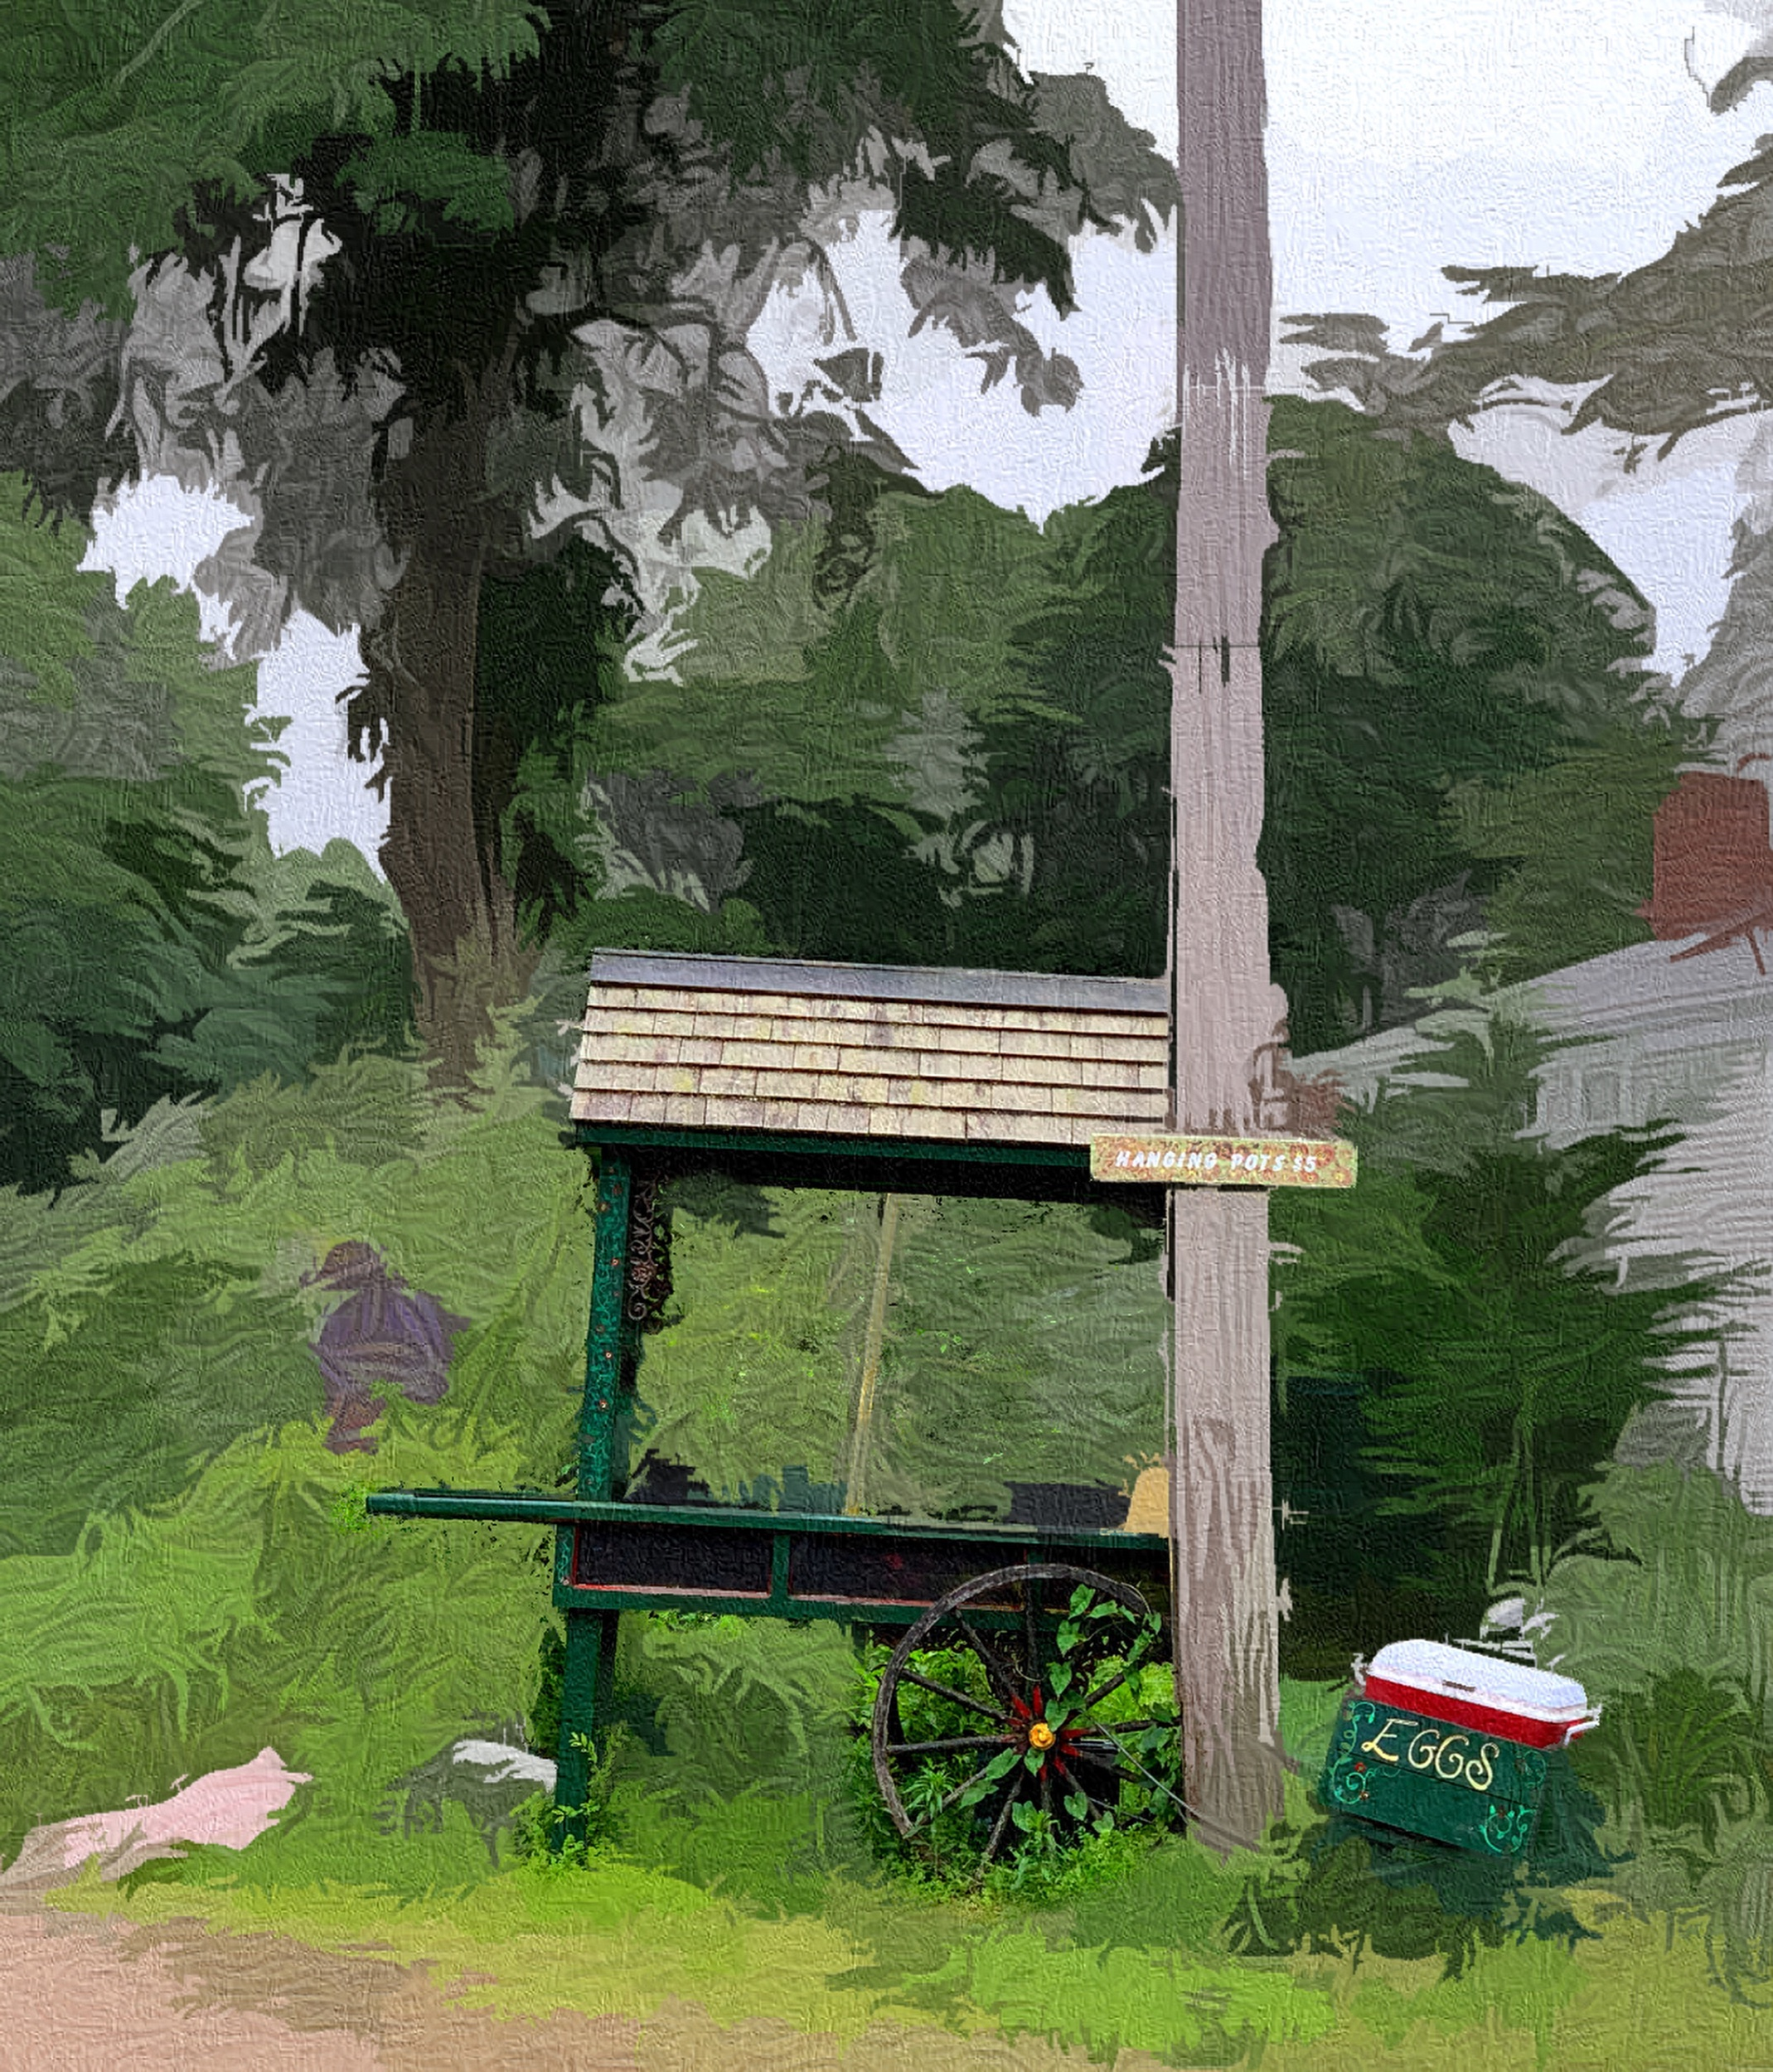 June 24, 2019 - Farm stand [Retouch & iColorama]